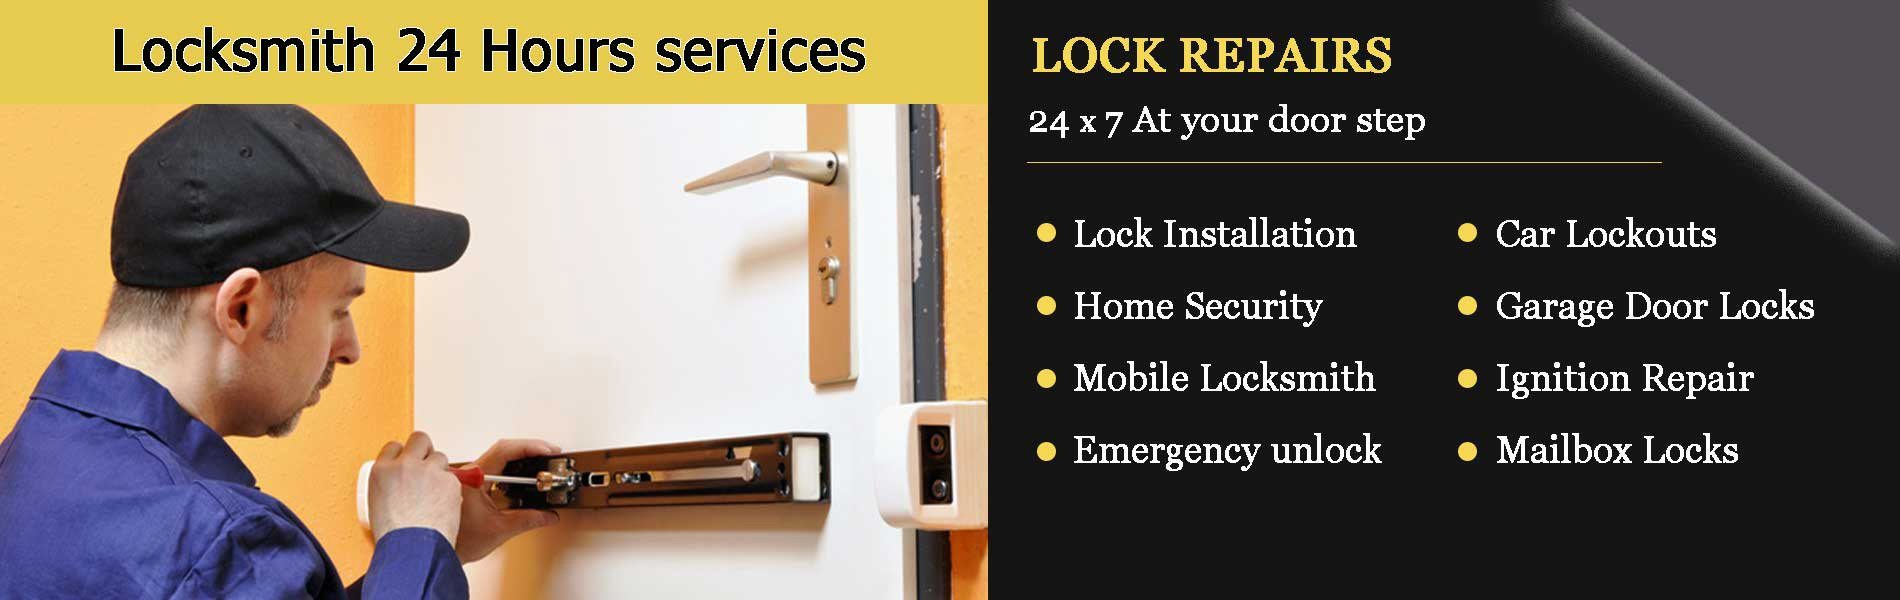 City Locksmith Store Palatine, IL 847-713-5687